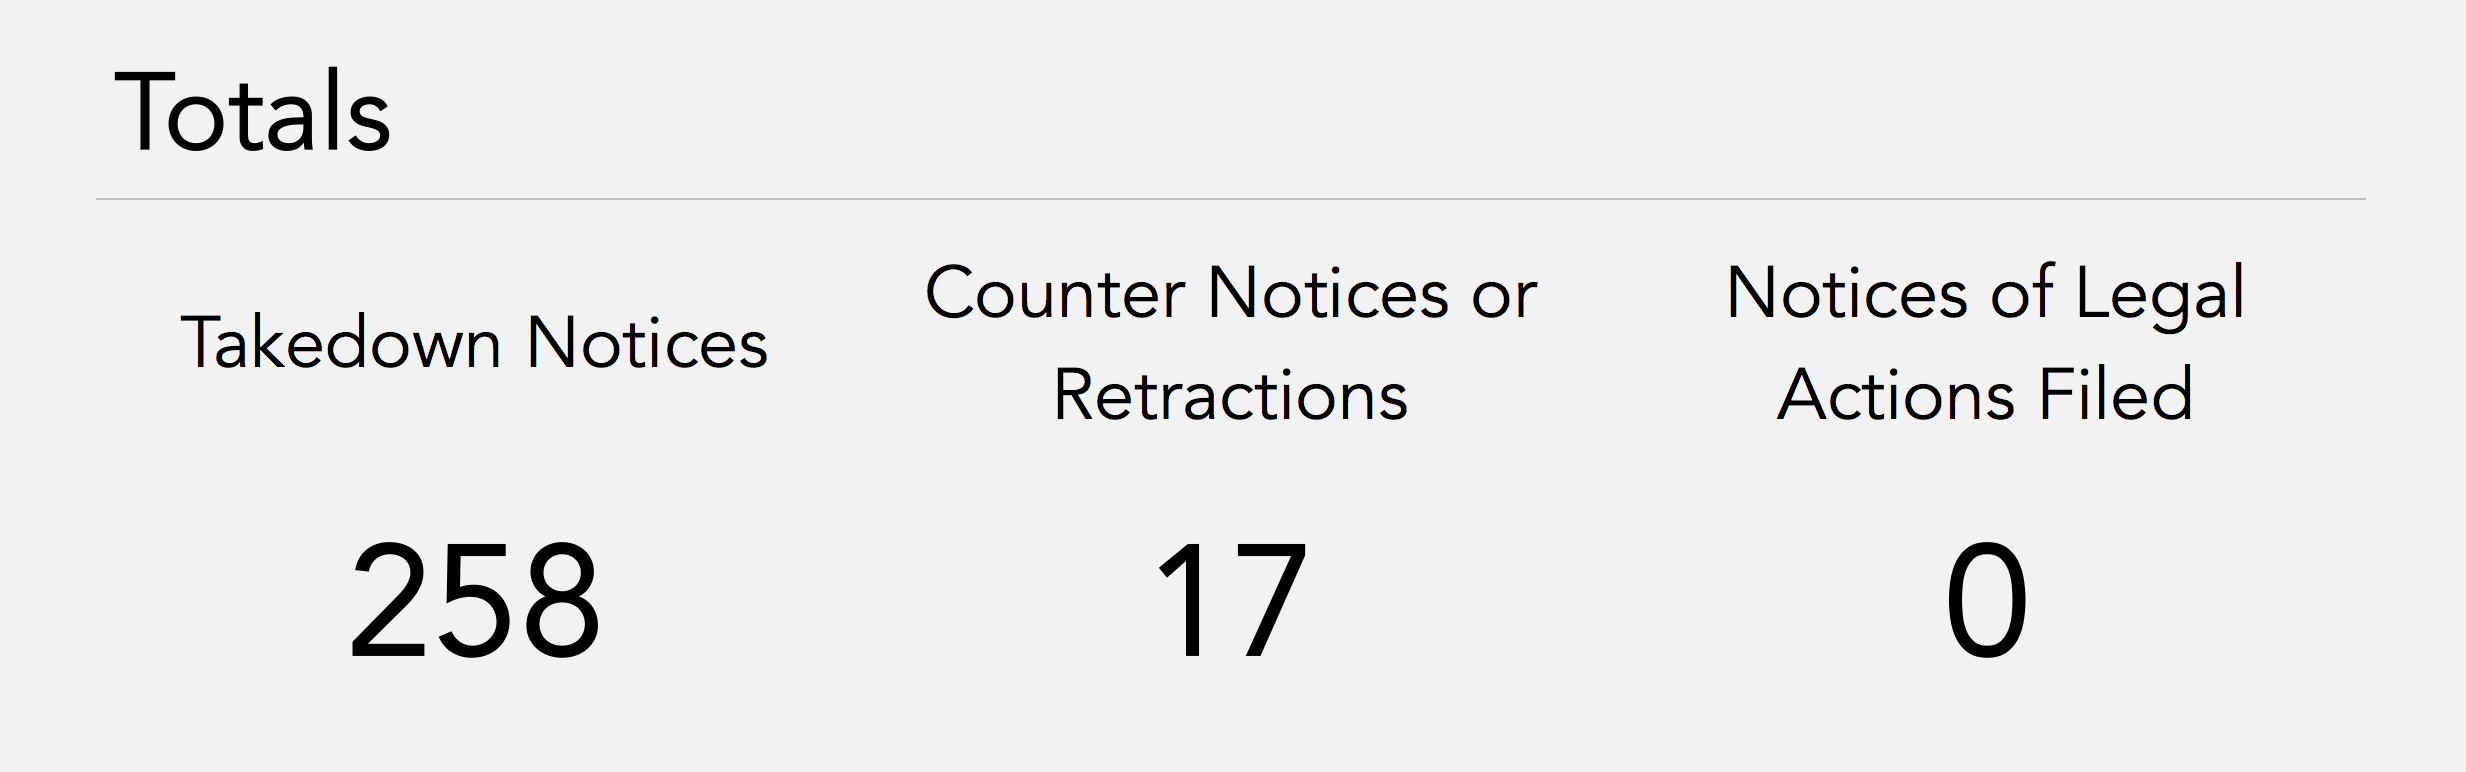 DMCA Totals.   Takedown Notices: 258.   Counter Notices or Retractions: 17.   Notices of Legal Actions Filed: 0